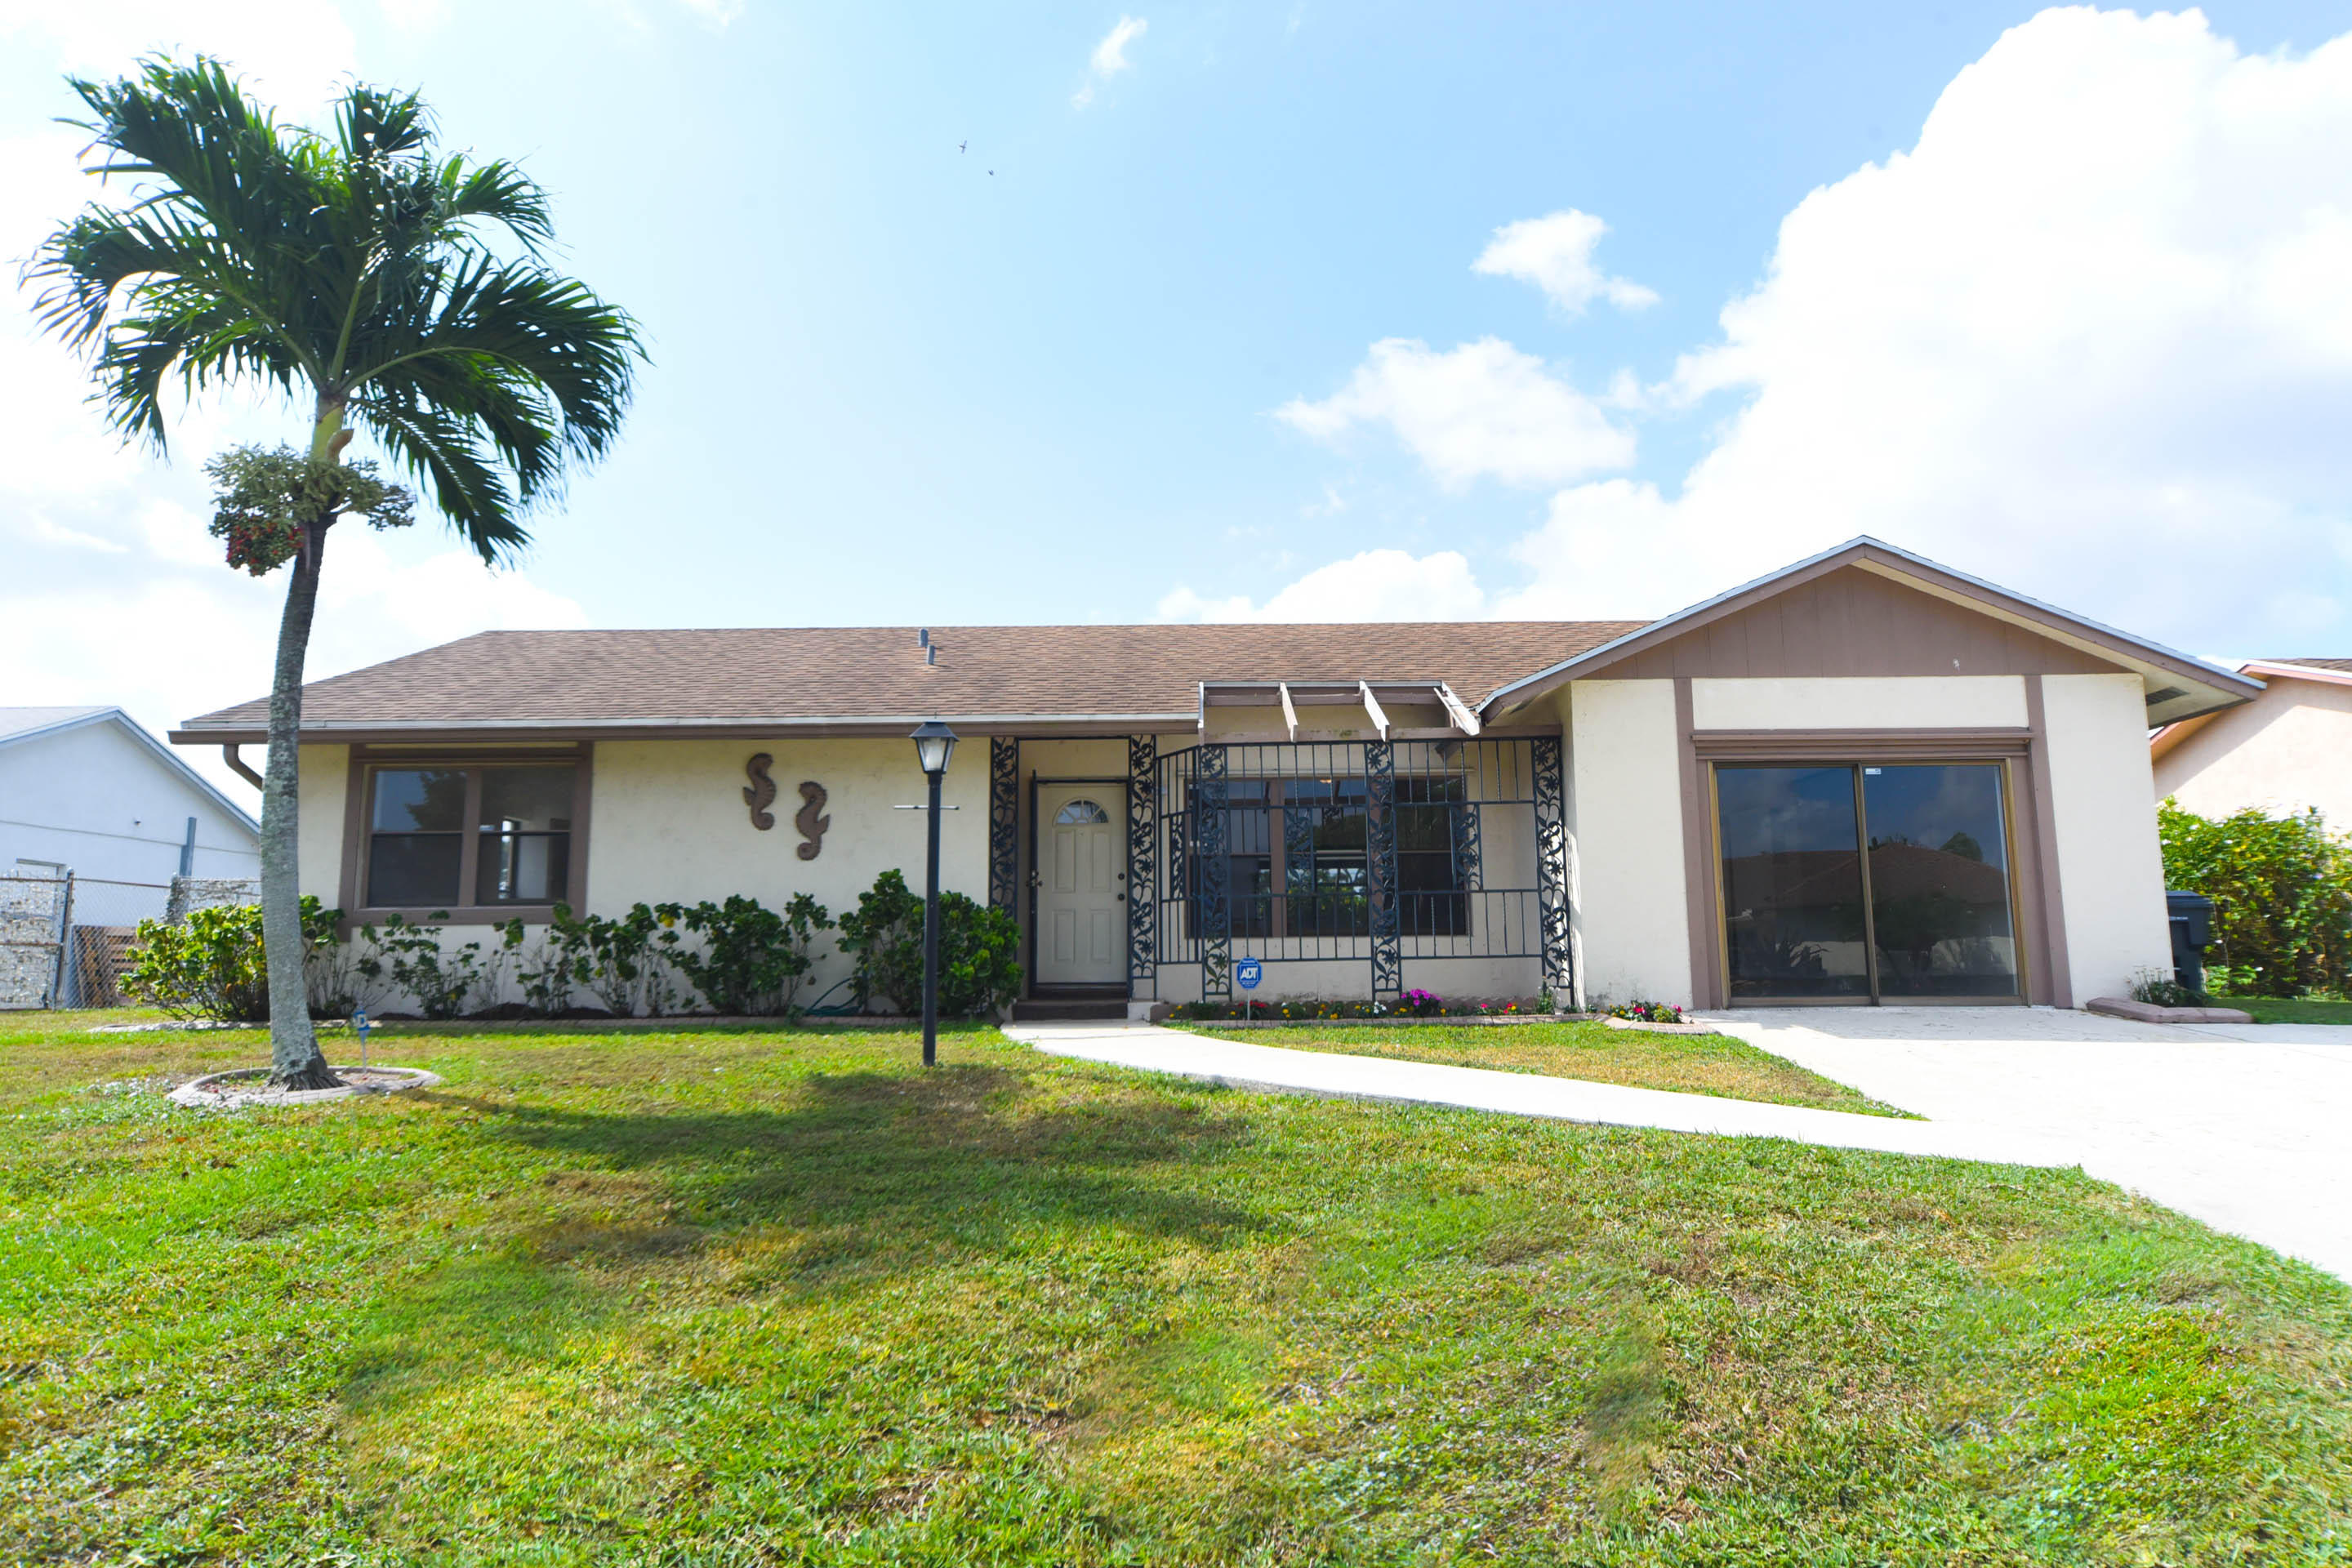 Home for sale in Greenbrier Lake Worth Florida